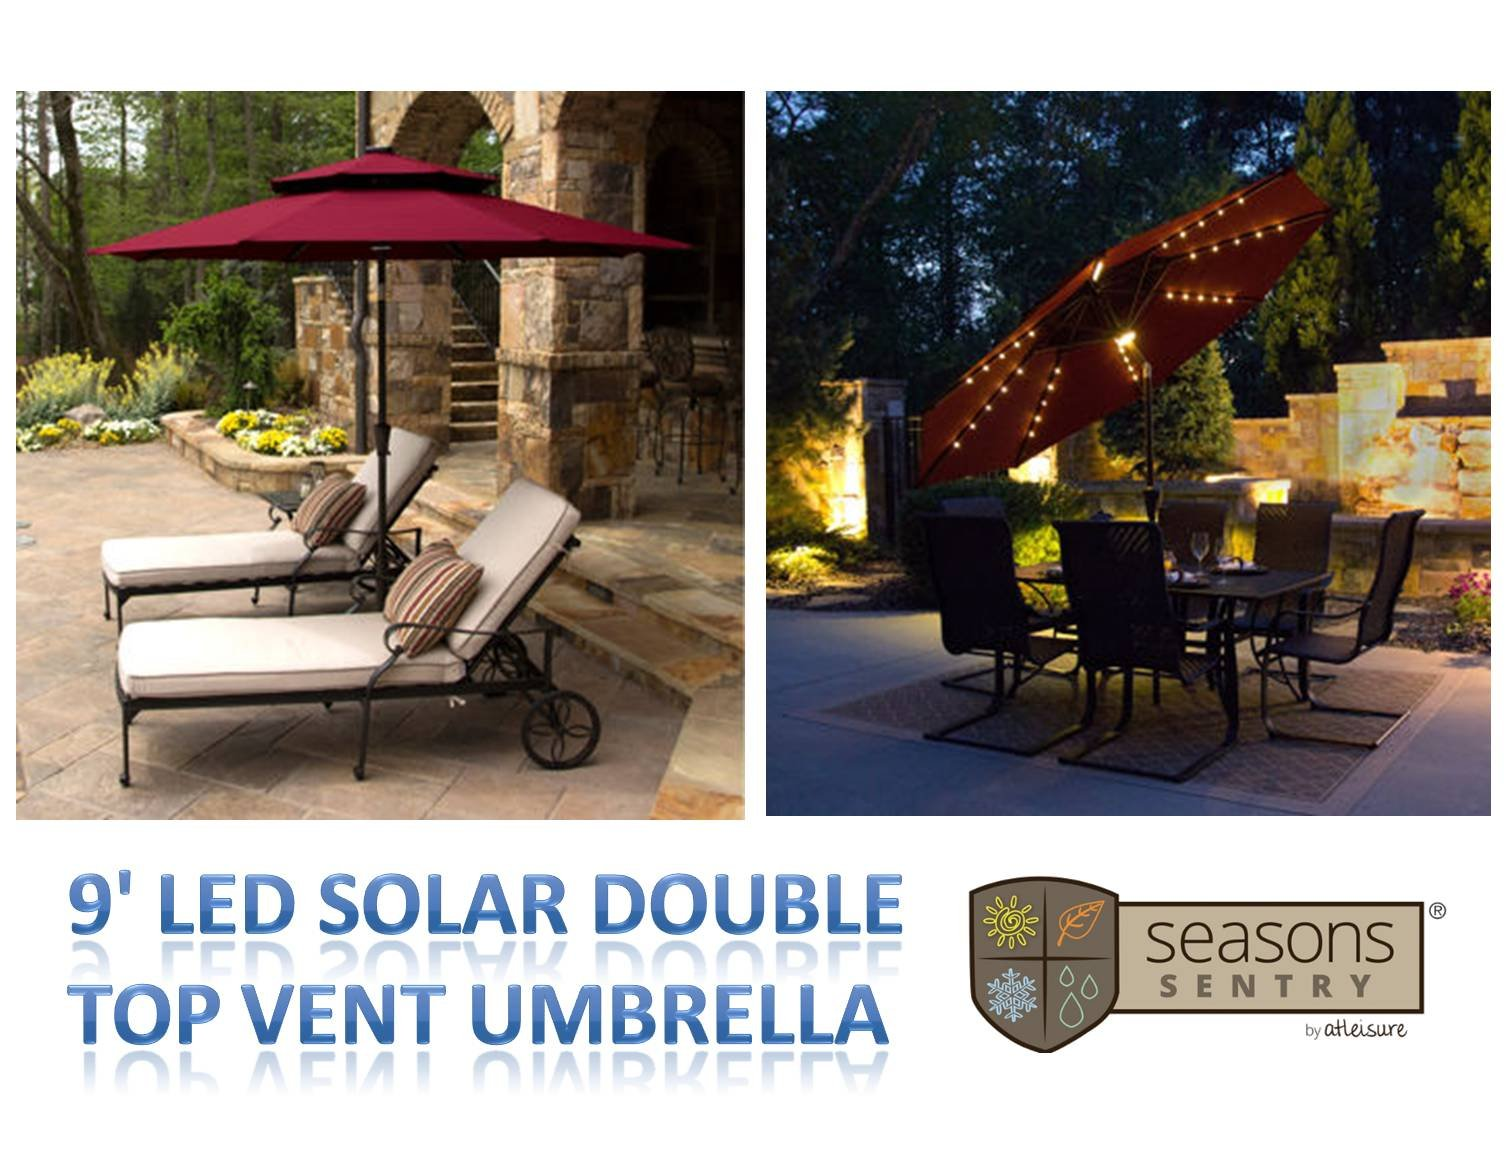 9' LED Solar Market Double-Top Vent Umbrella in BURGUNDY with 52 White LED Lights & Rechargeable Solar Panel by Seasons Sentry